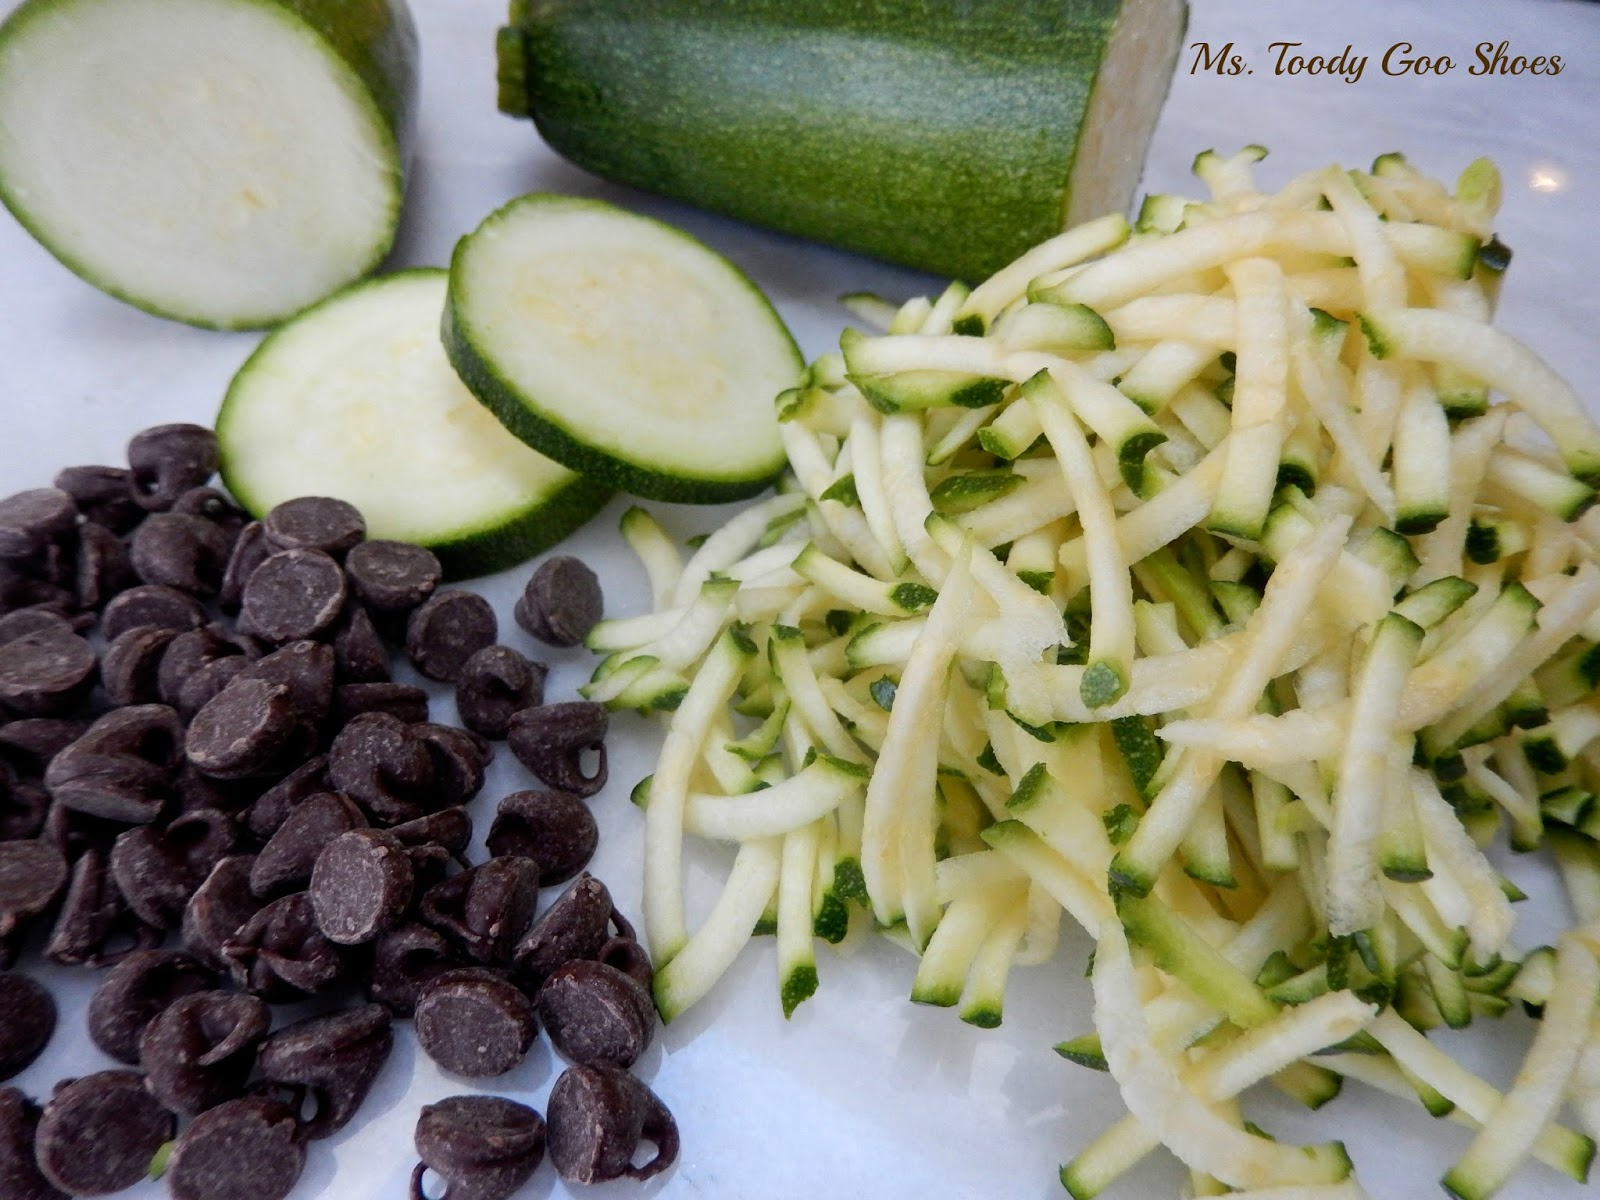 Chocolate Zucchini Snack Cake --- Ms. Toody Goo Shoes